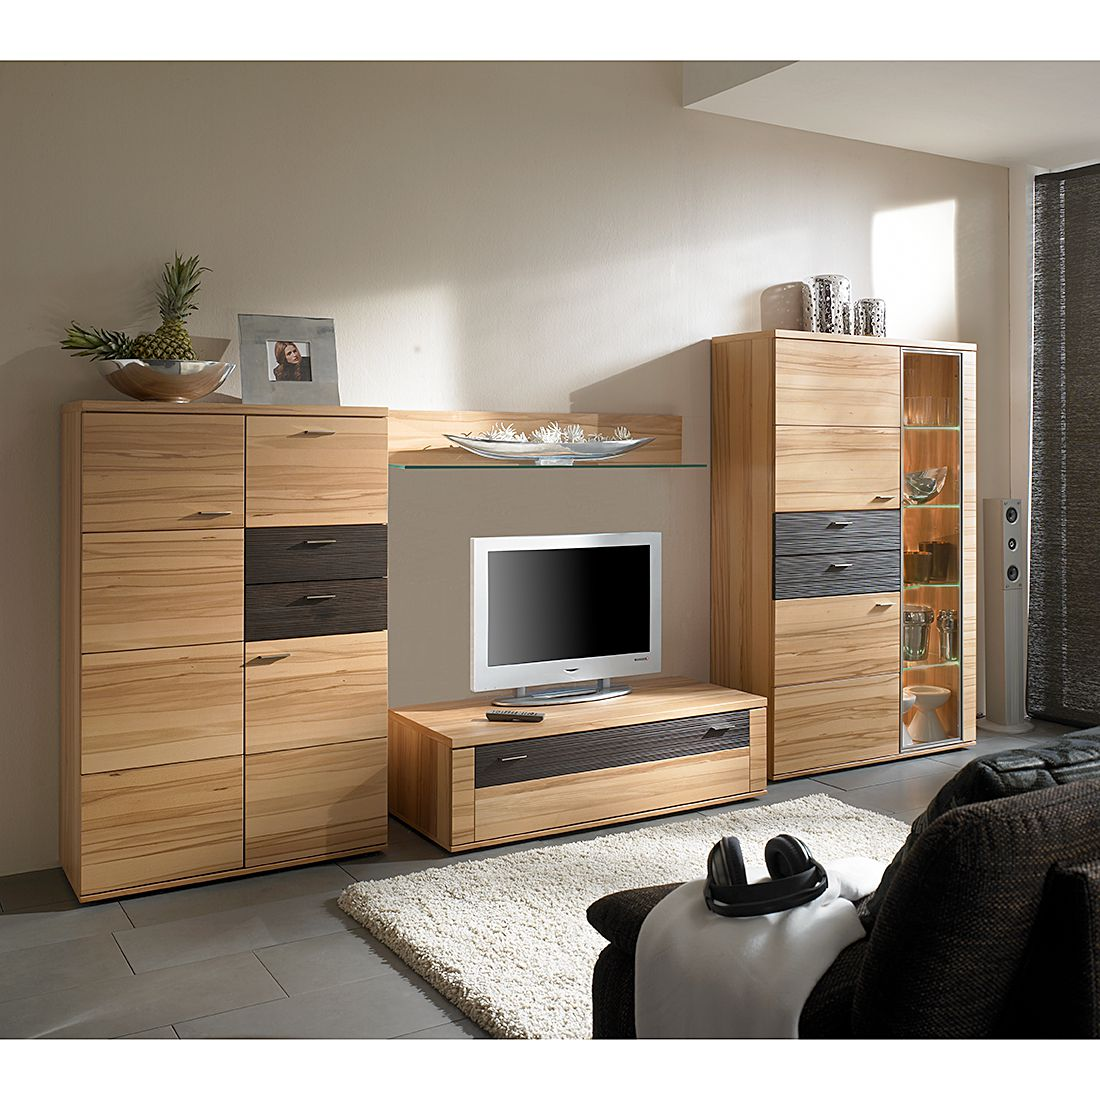 wohnwand vita ii 4 teilig kernbuche vitrinenelement. Black Bedroom Furniture Sets. Home Design Ideas